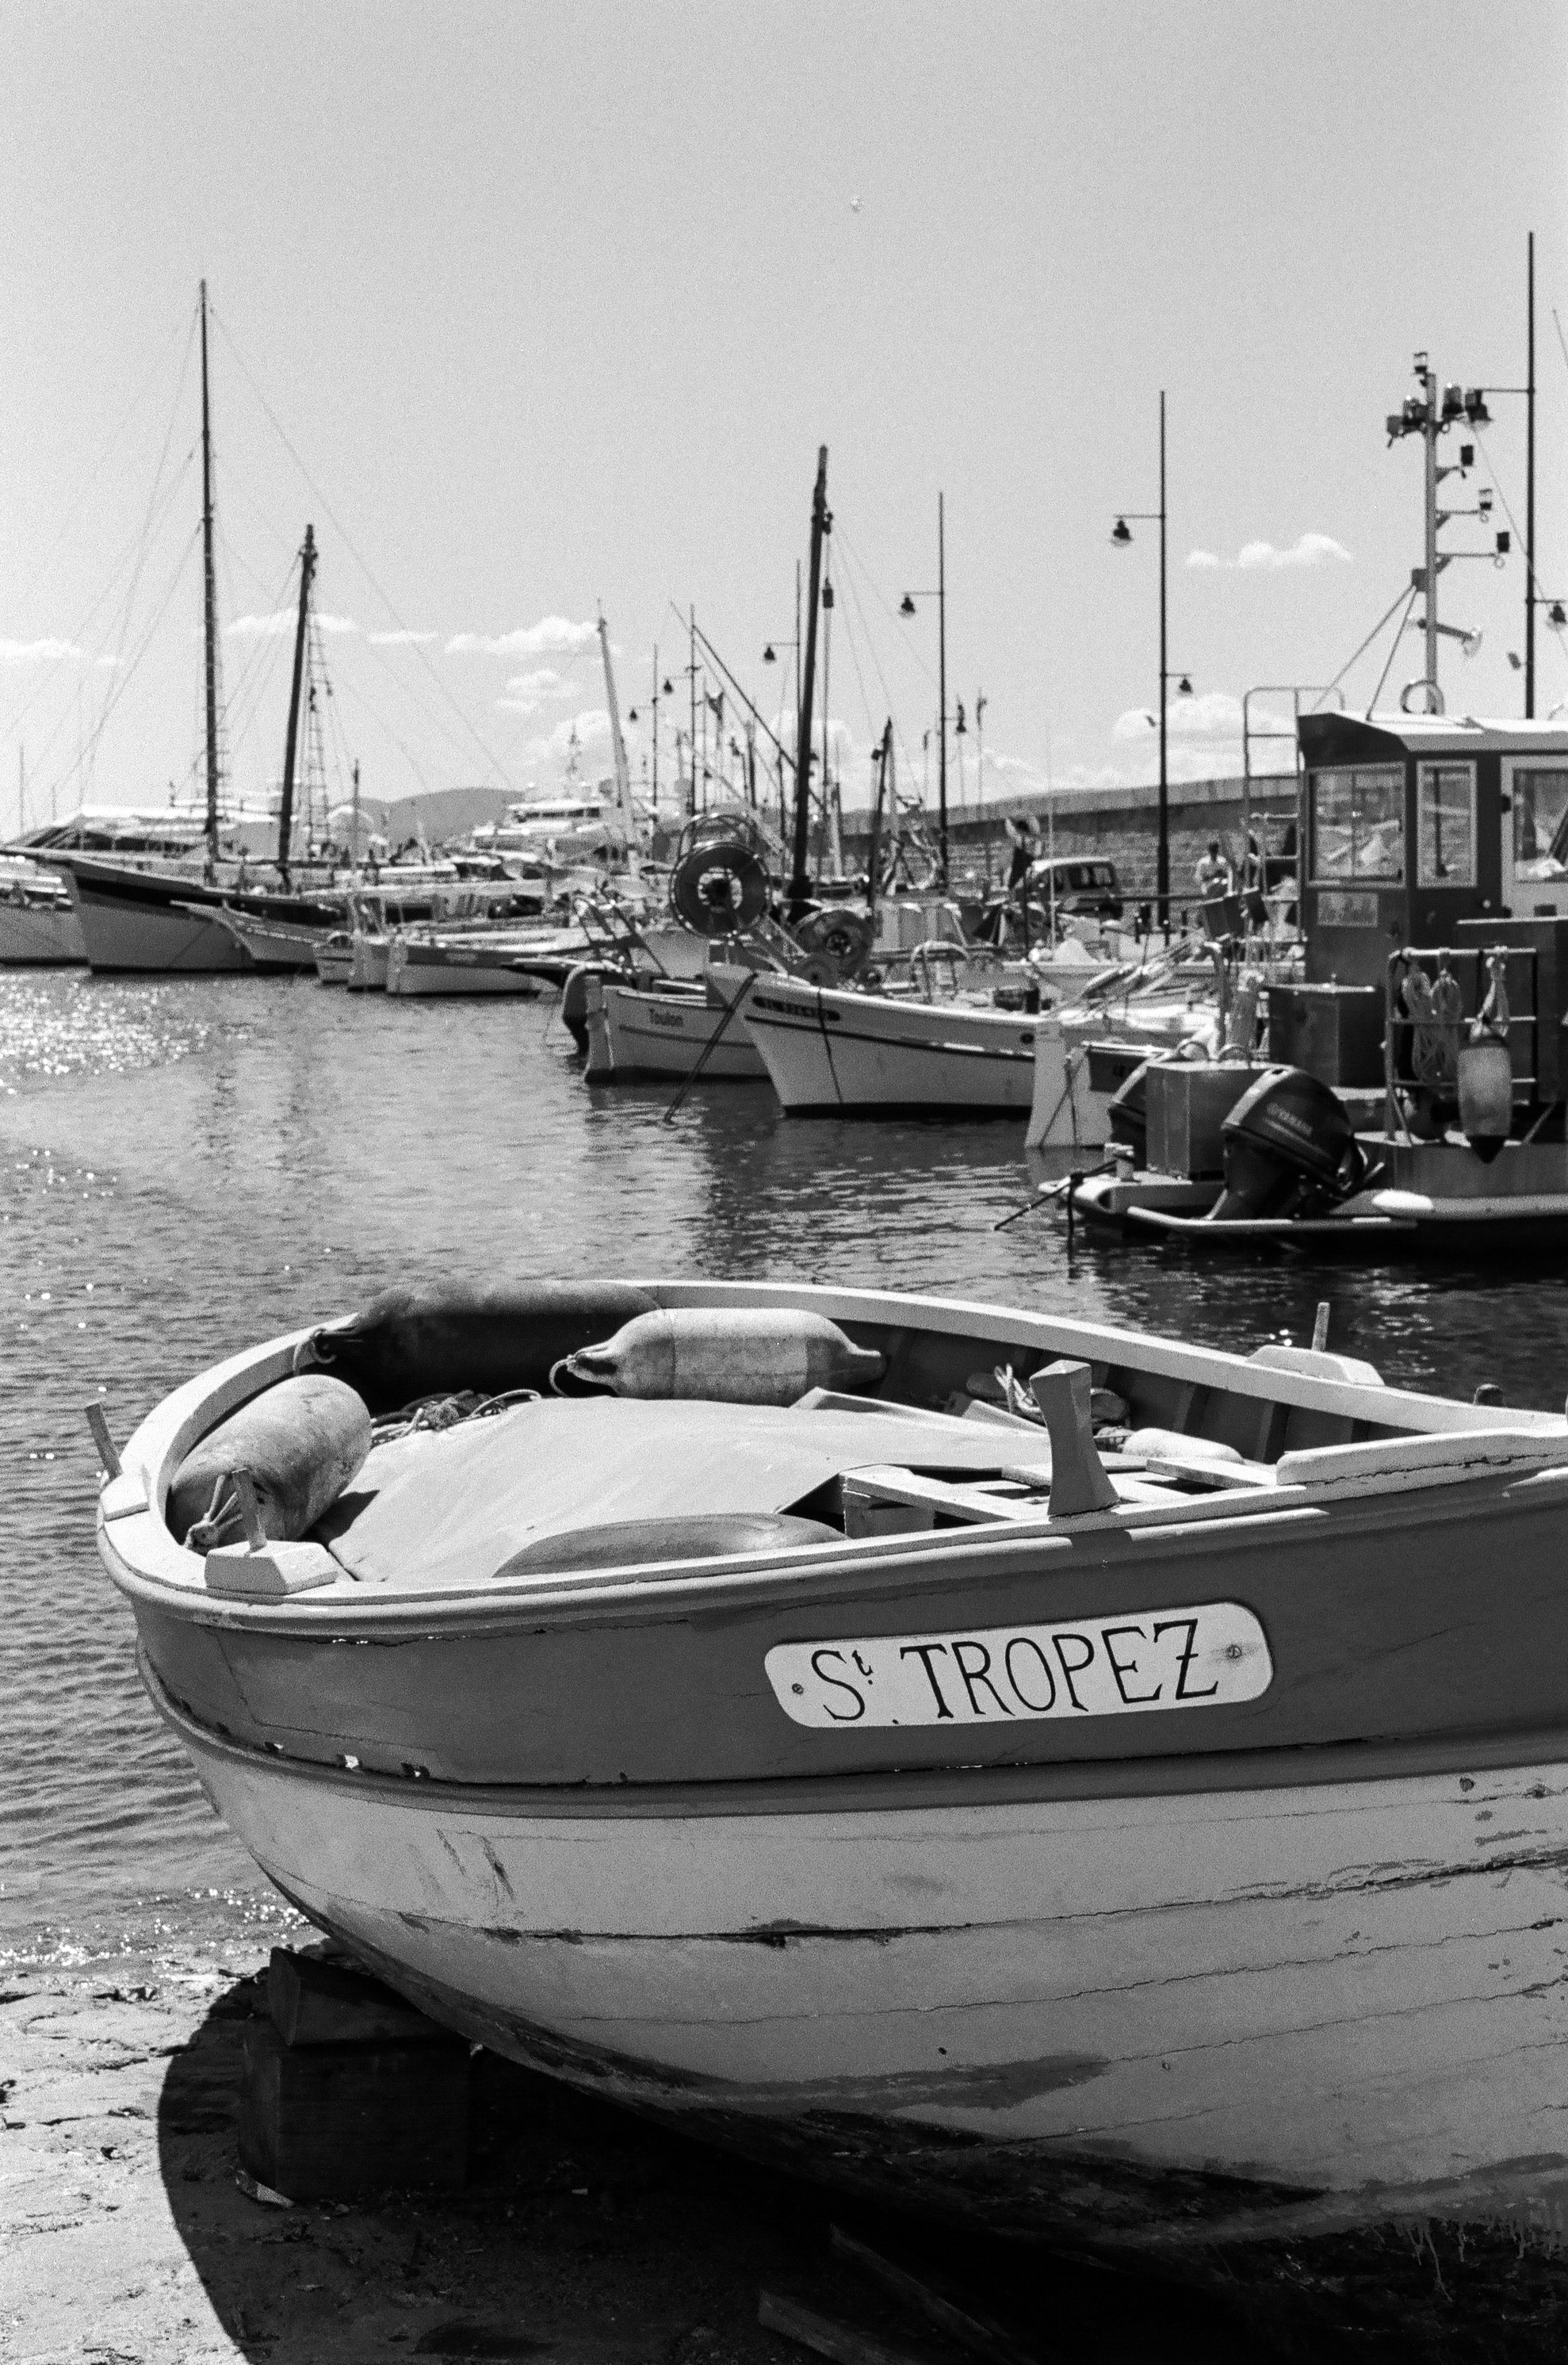 Port de Saint-Tropez - Clifford Darby 2017